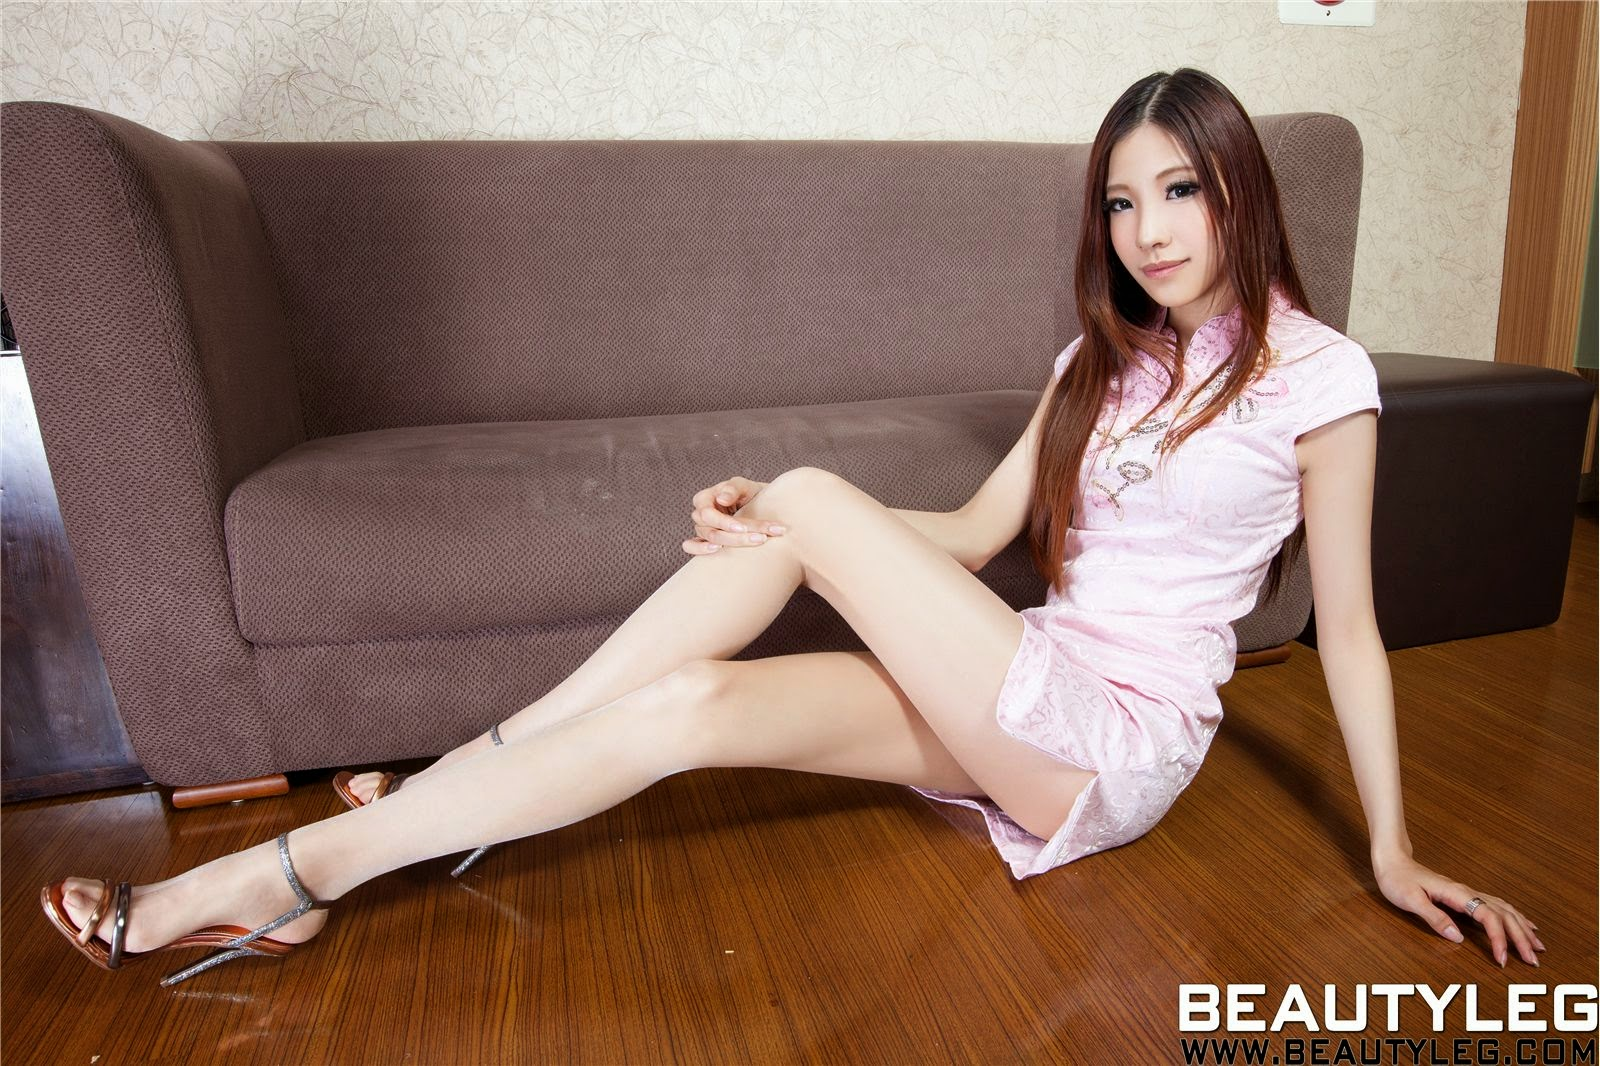 abby beautyleg model i